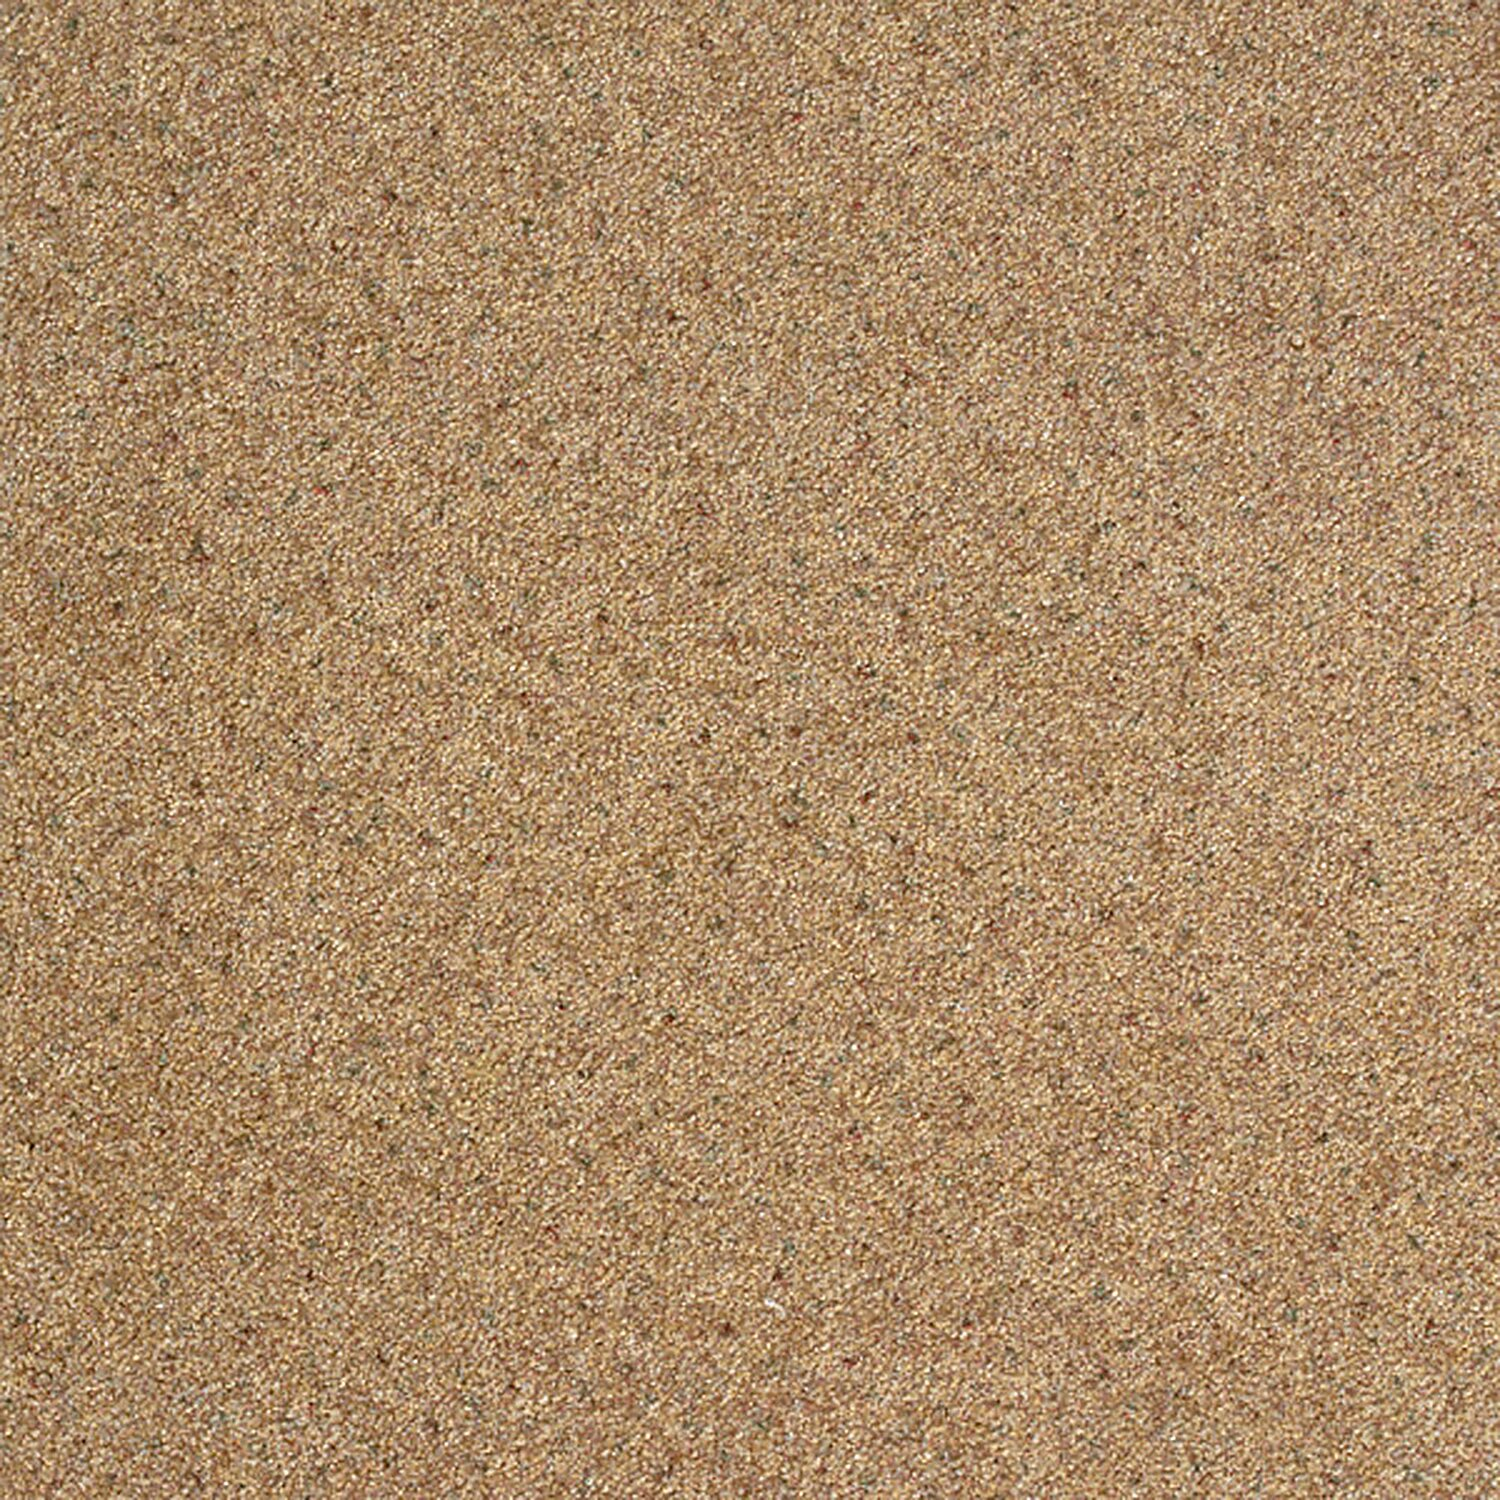 Milliken Legato Embrace 19 7 Quot X 19 7 Quot Carpet Tile In